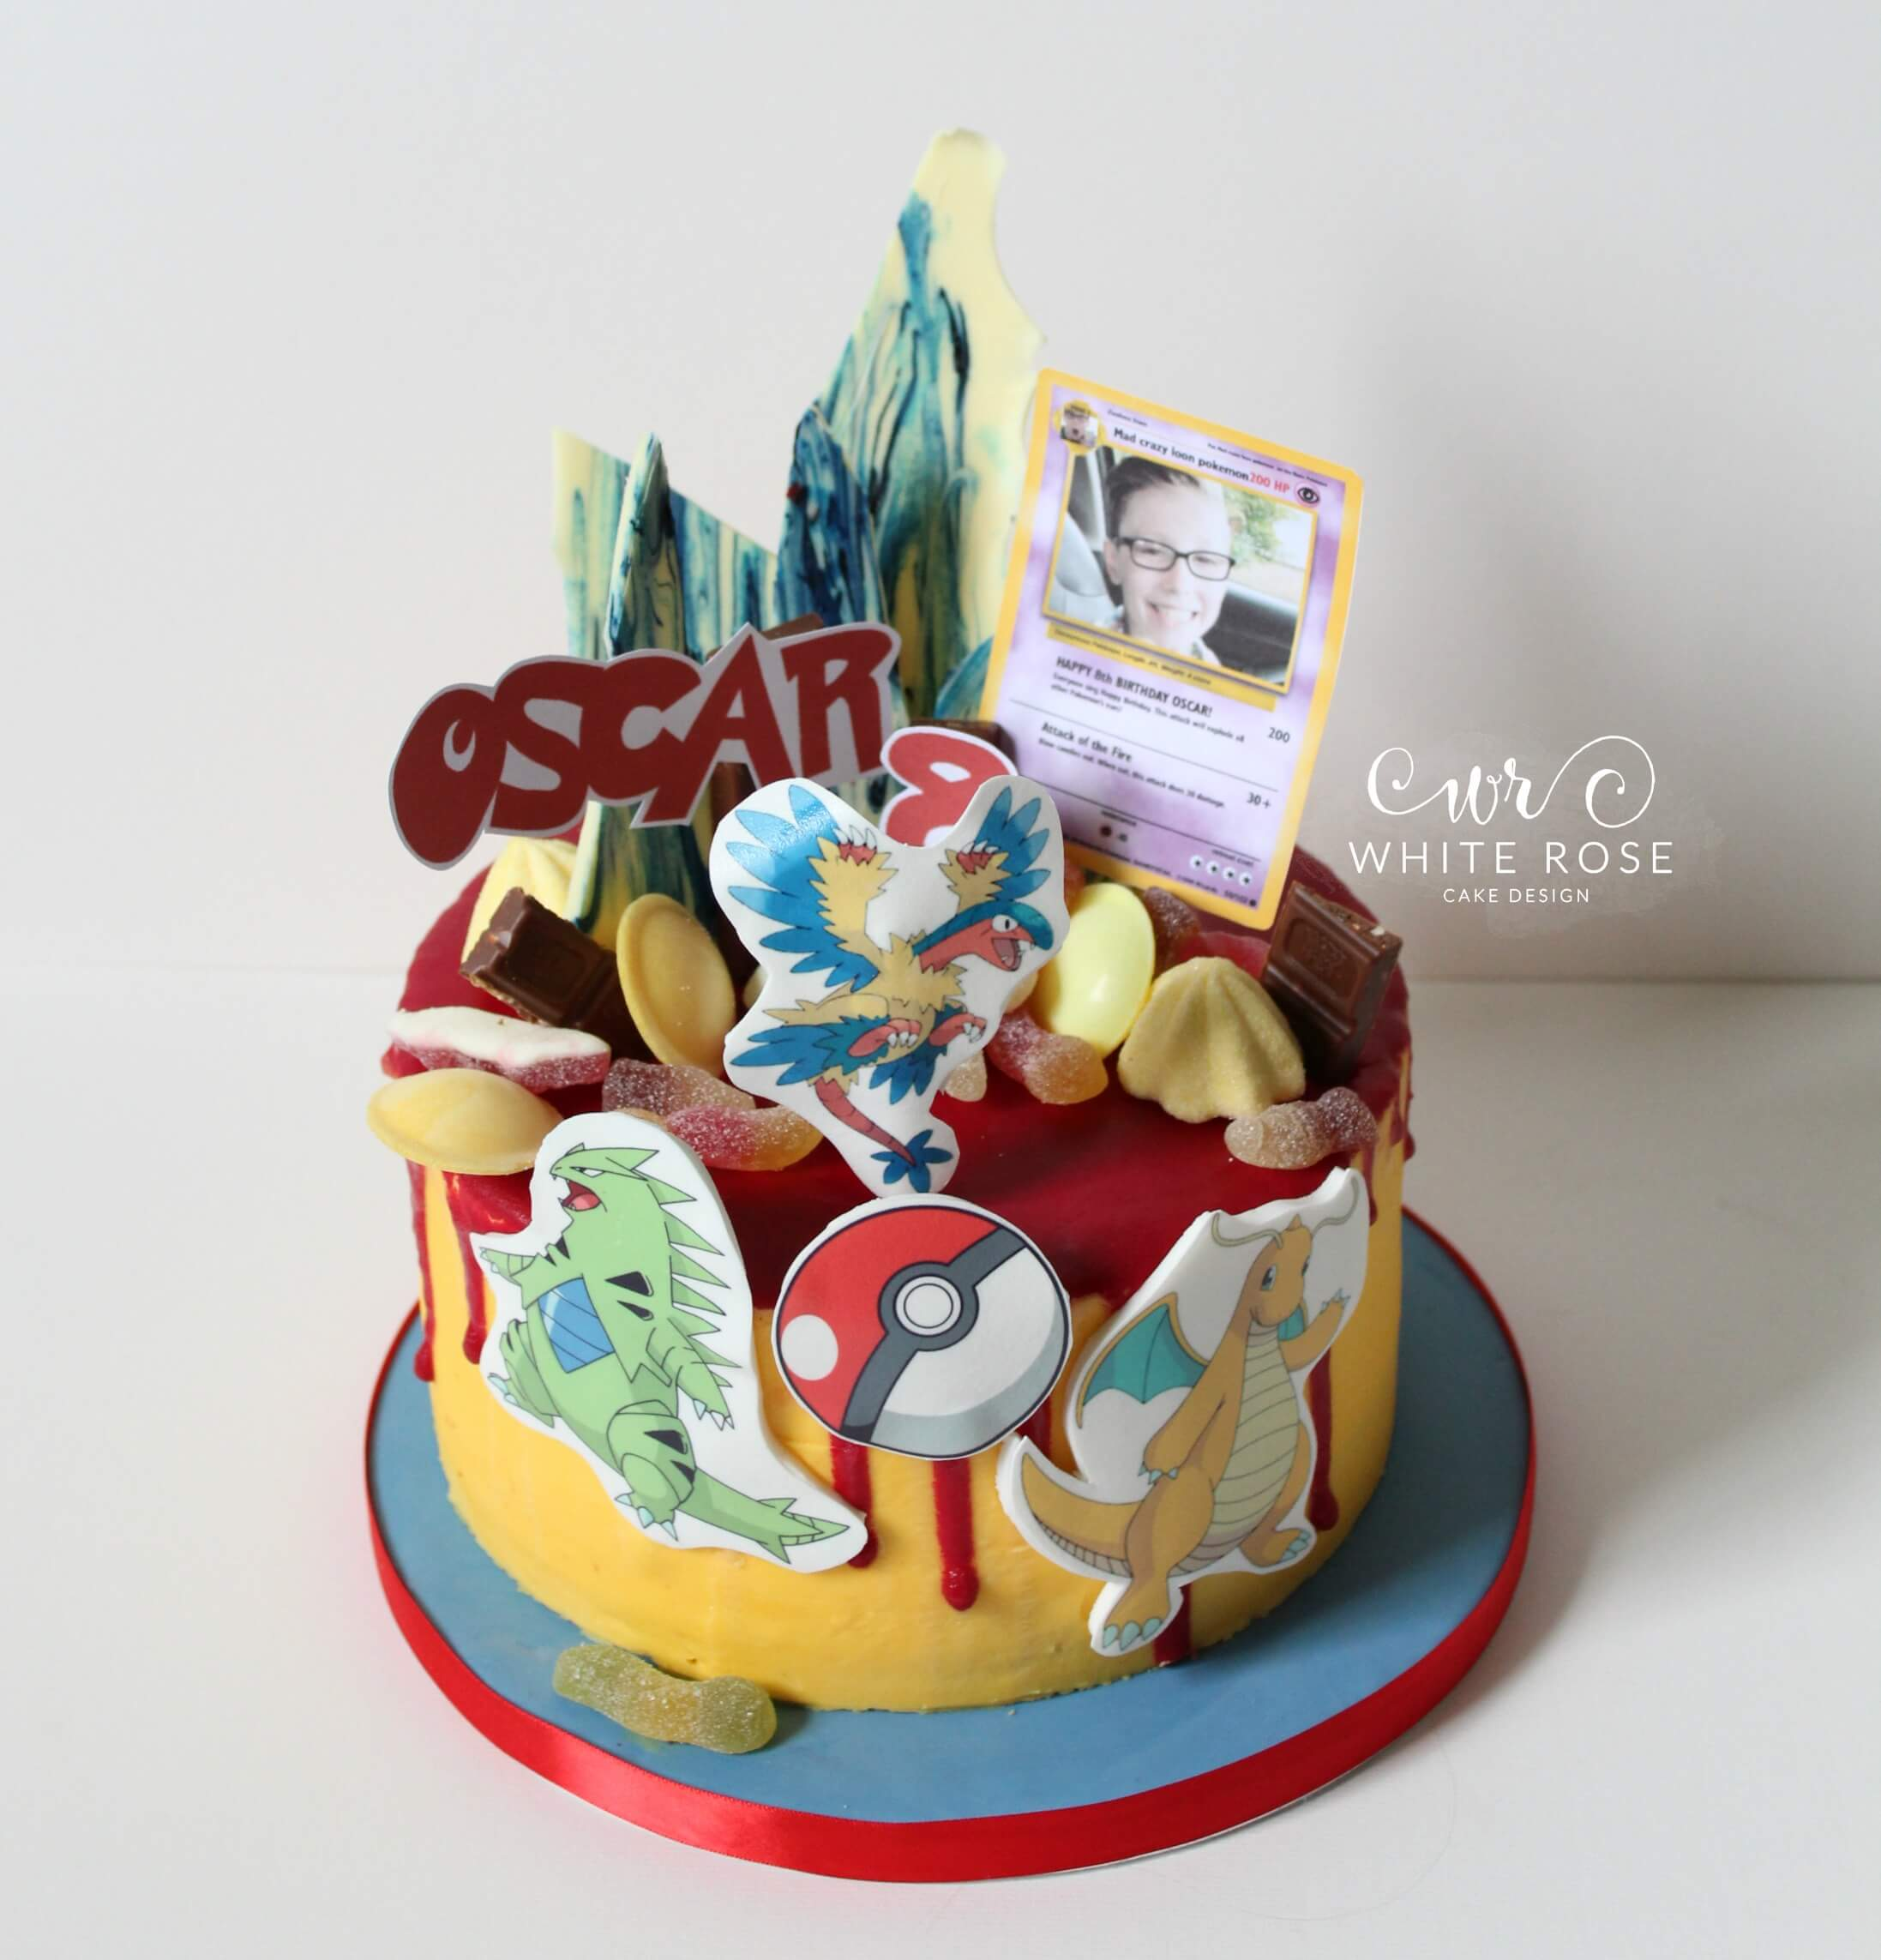 Pokemon Birthday Cake 8th Birthday White Rose Cake Design Cake Maker in Holmfirth Huddersfield West Yorkshire